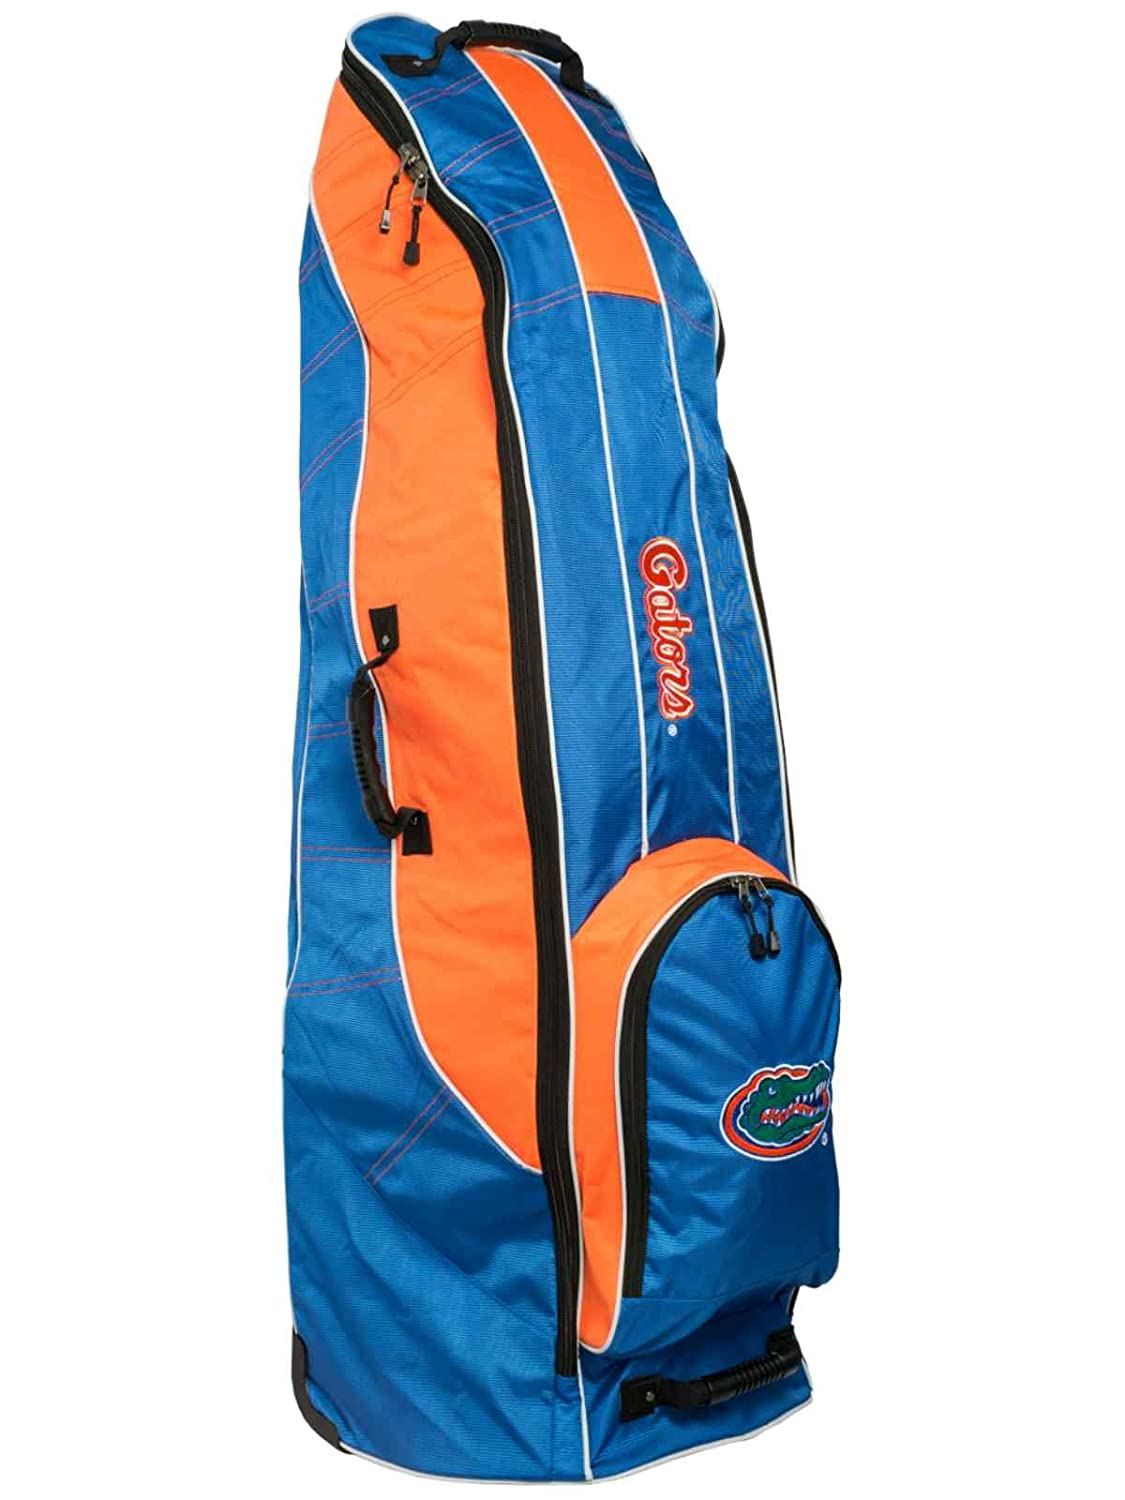 Florida GatorsチームゴルフブルーゴルフクラブWheeled Luggage Travel Bag B01MRK1B7R